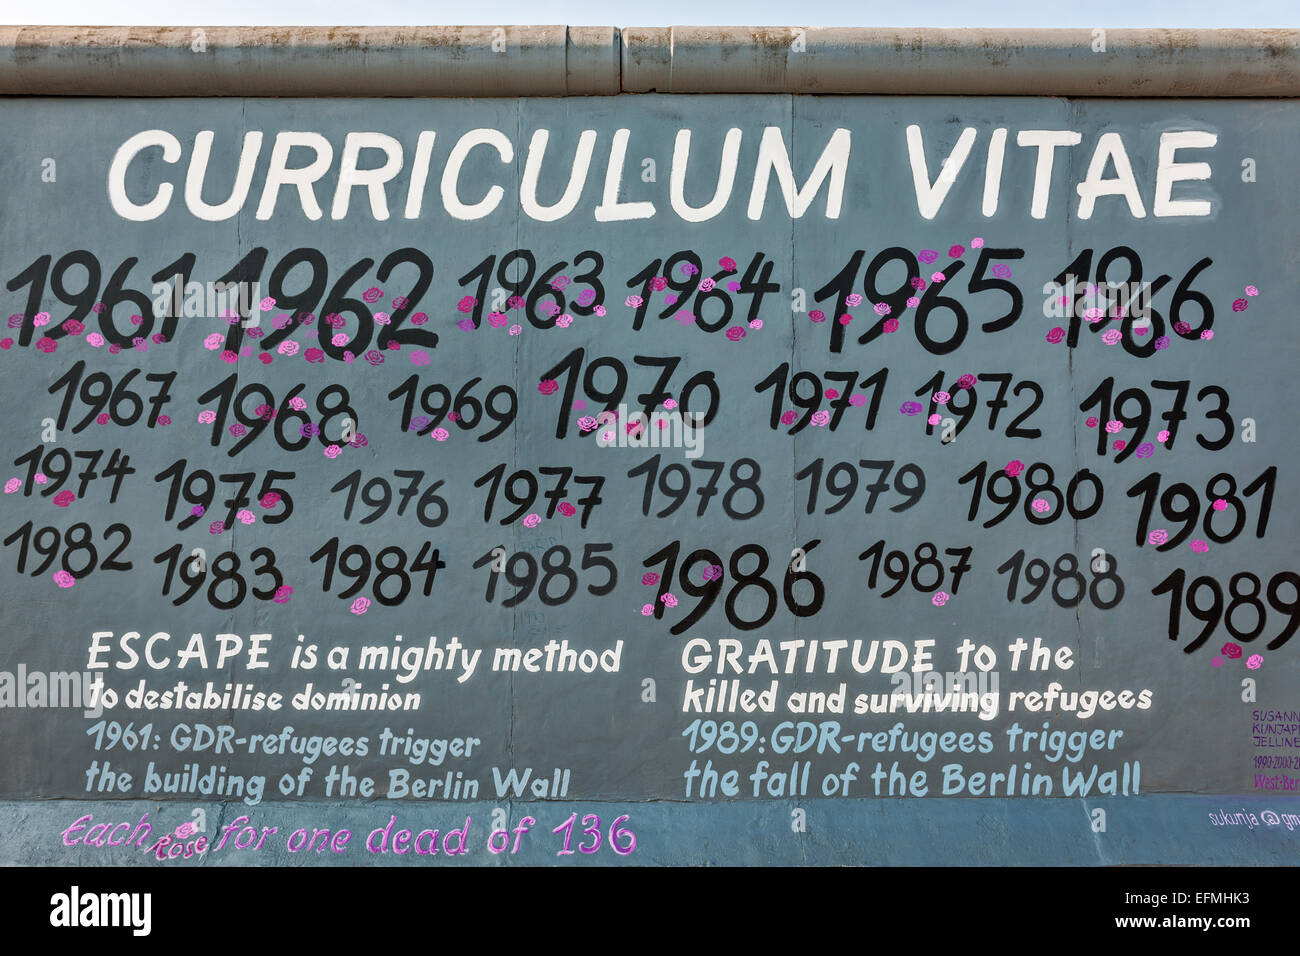 51c15bfc67939 Mural Curriculum Vitae by Susanne Kunjappu-Jellinek on the remains of the  Berlin Wall